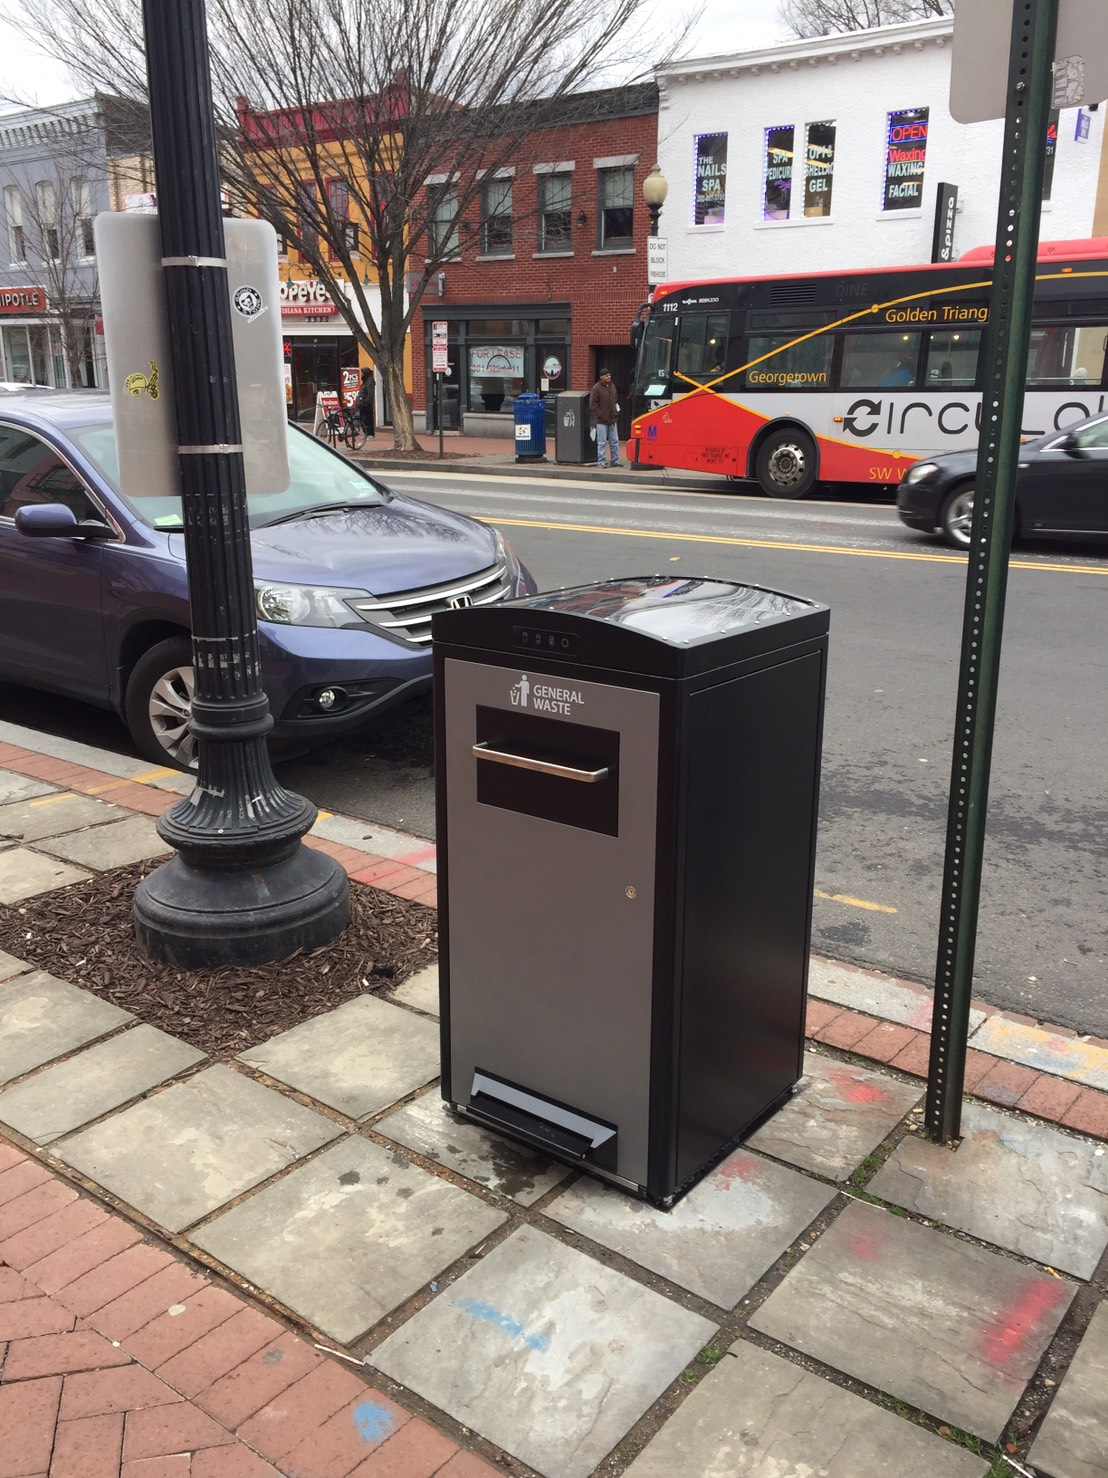 Solar trash bin in Washington, D.C.